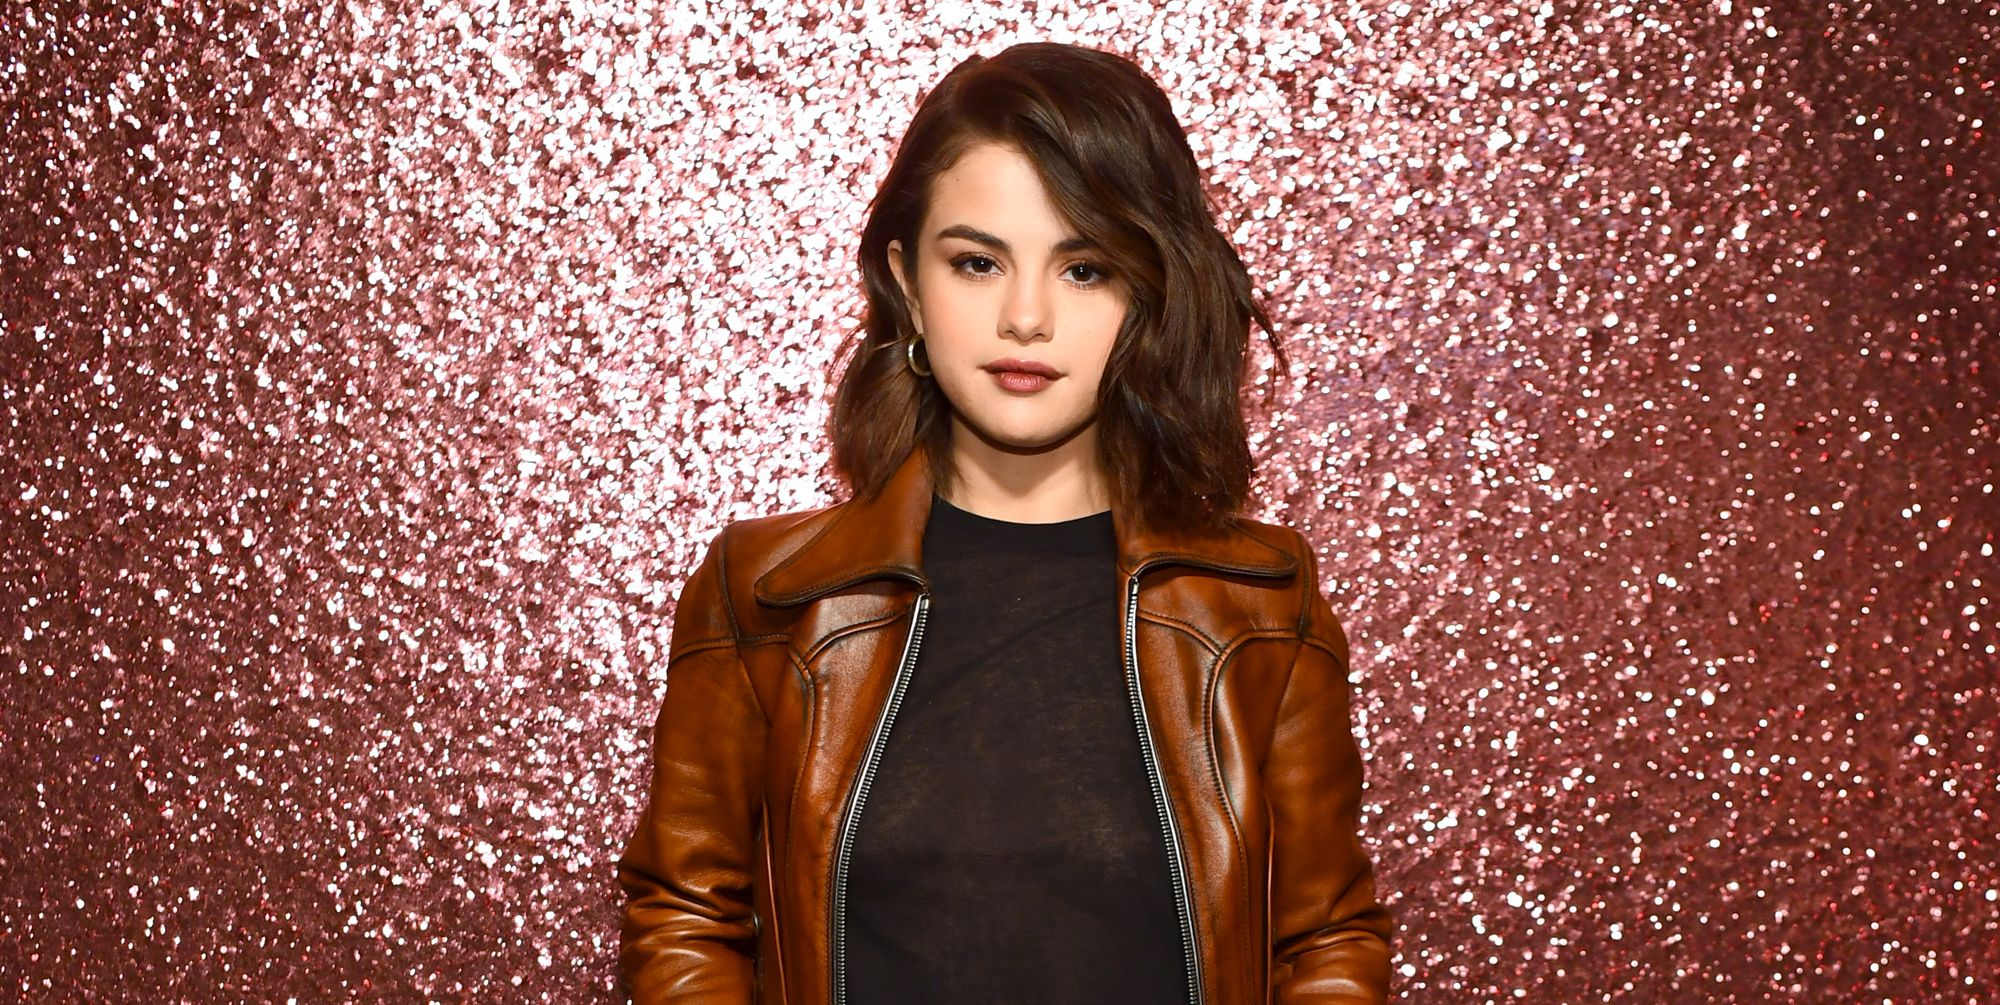 Selena Gomez Loves Coach, Satin Couch Clothes, and Game of Thrones